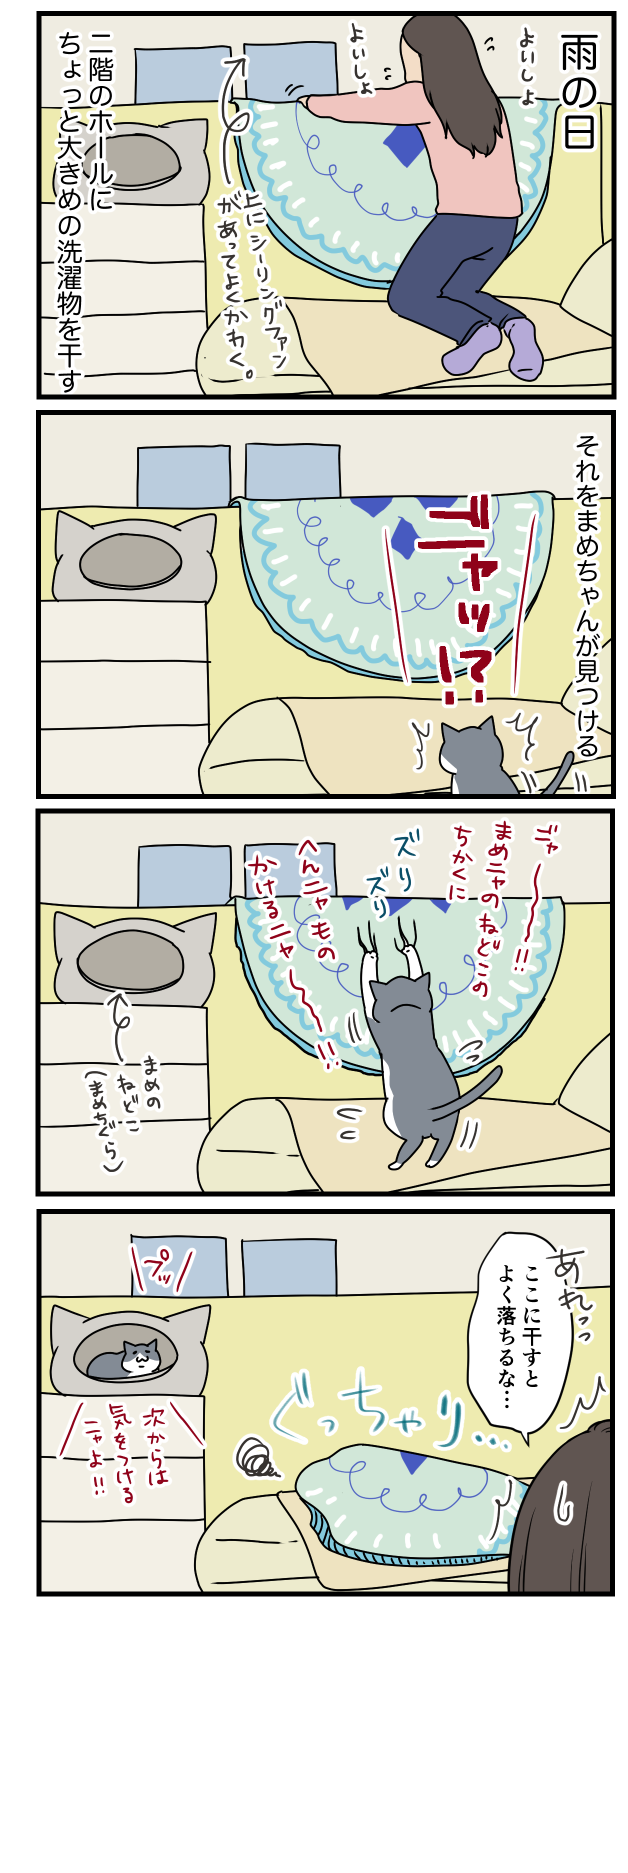 20180511150815cb2.png